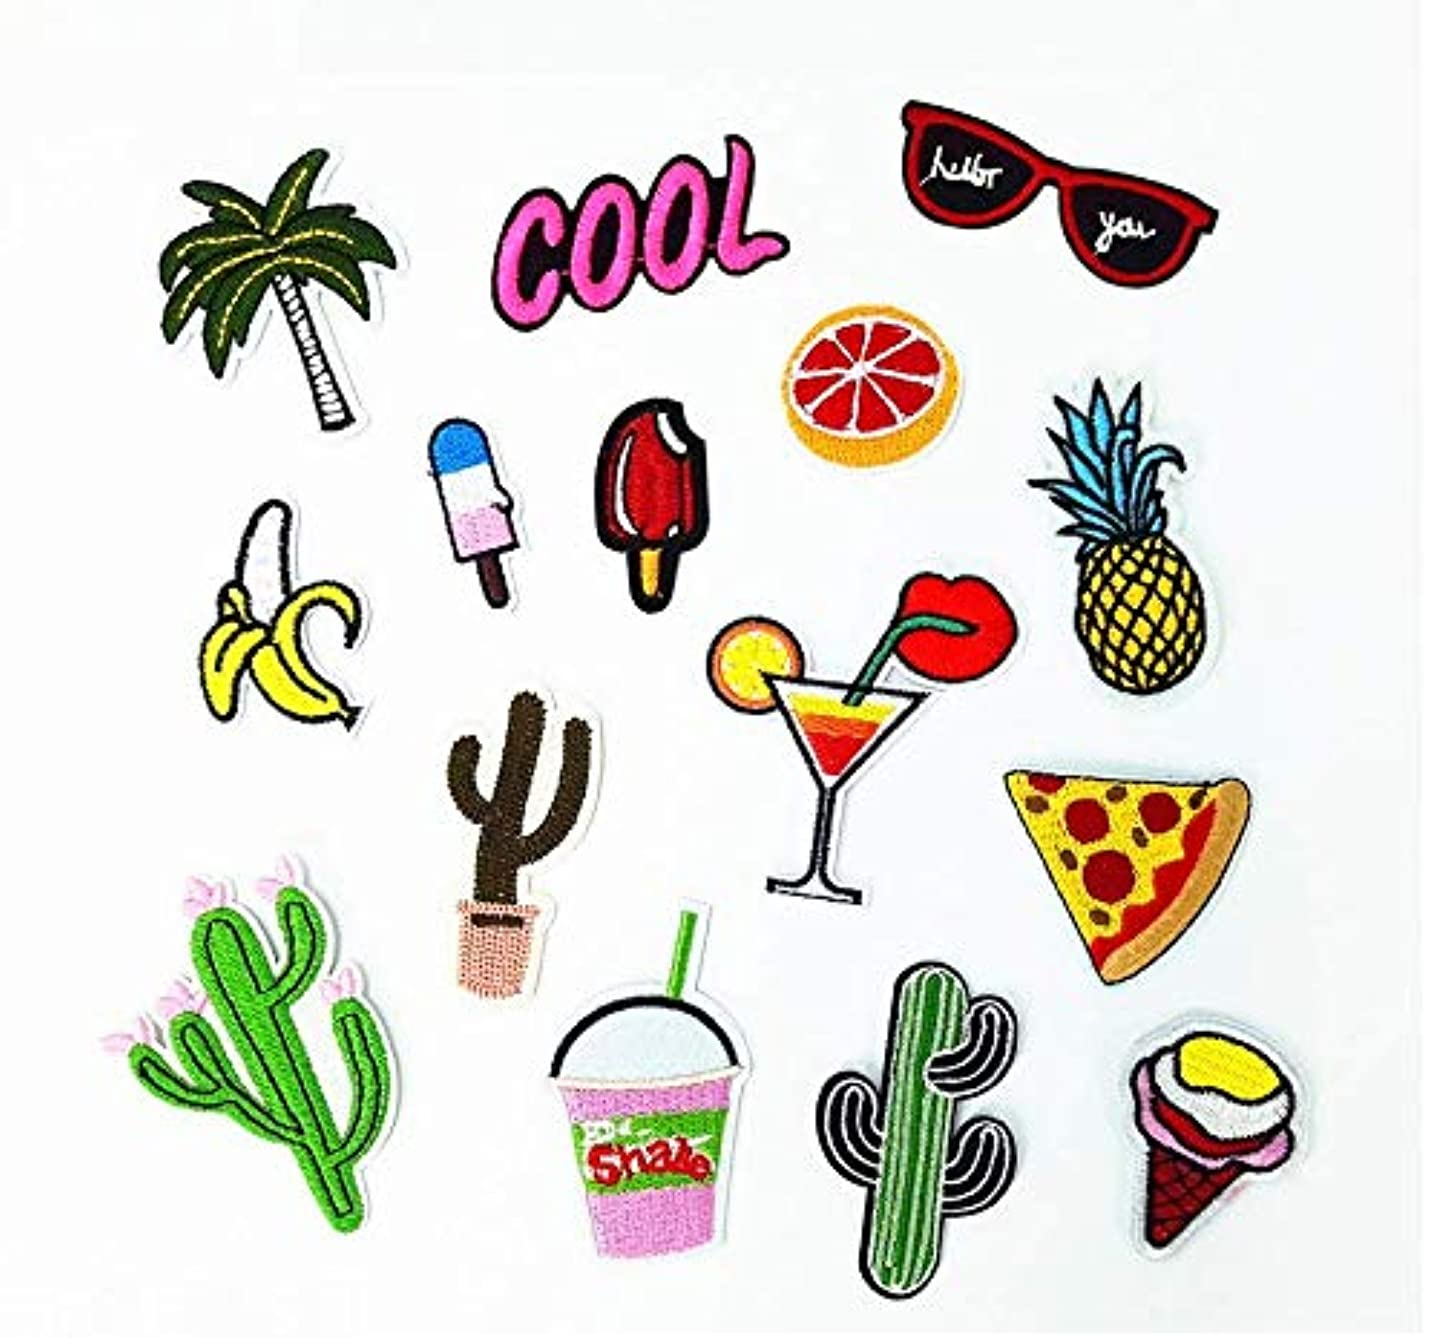 AG Goodies Iron On Patches - 15 Pcs Embroidered Patches Appliques Motif Applique Kit Assorted Size Decoration Sew On Patches for Jackets, Backpacks, Jeans, Clothes